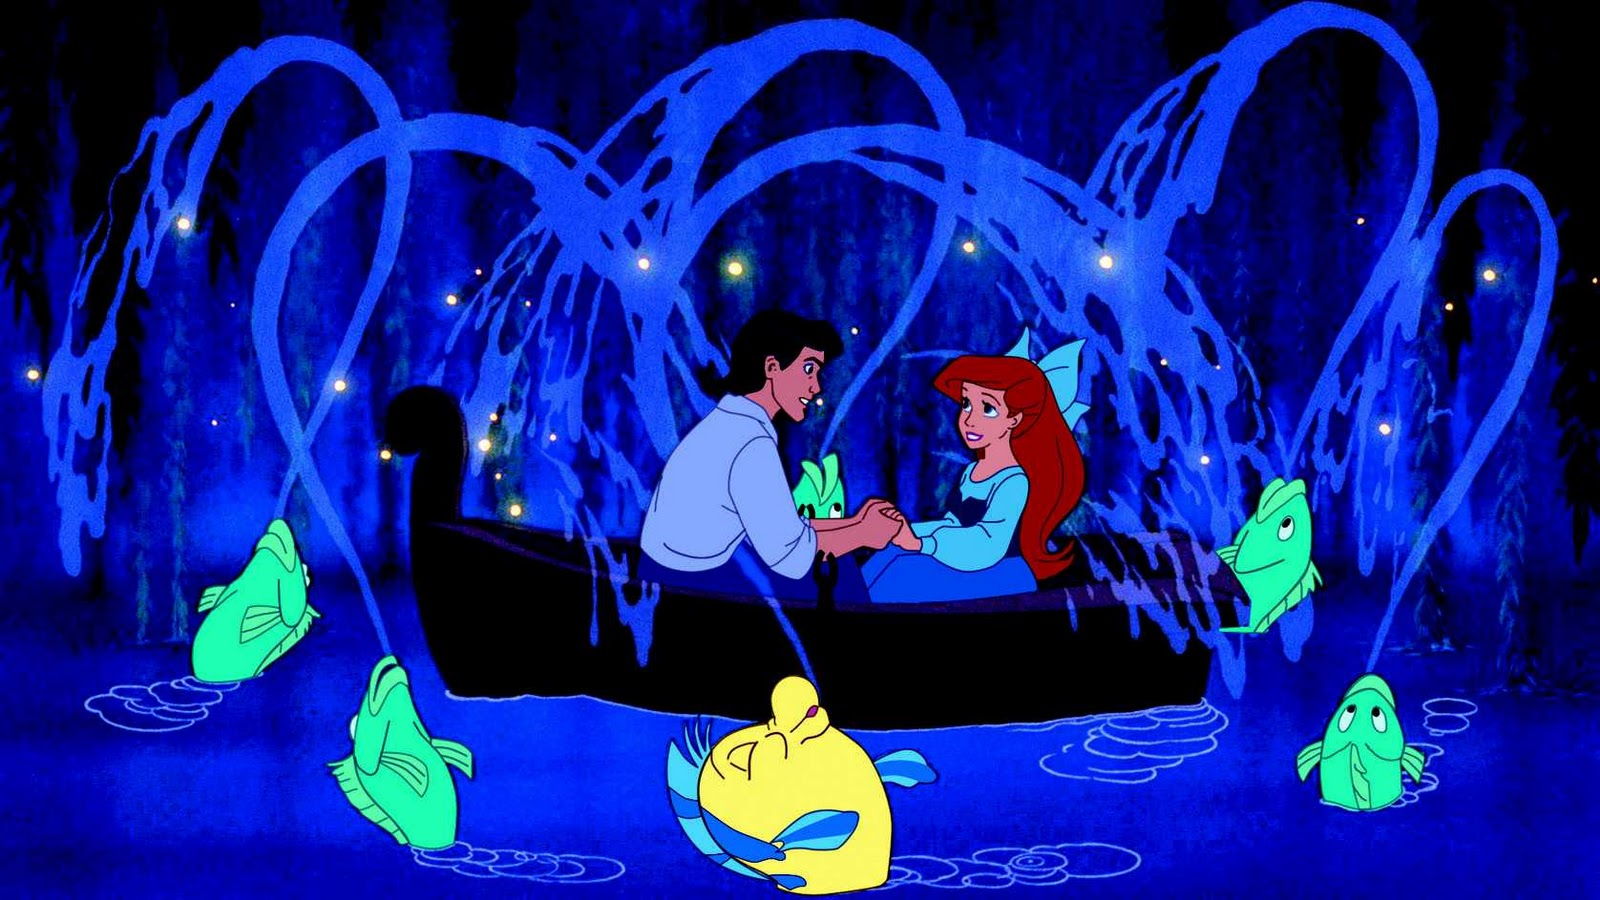 Diary of a Celluloid Girl: The Little Mermaid: Good Ole Family Fun